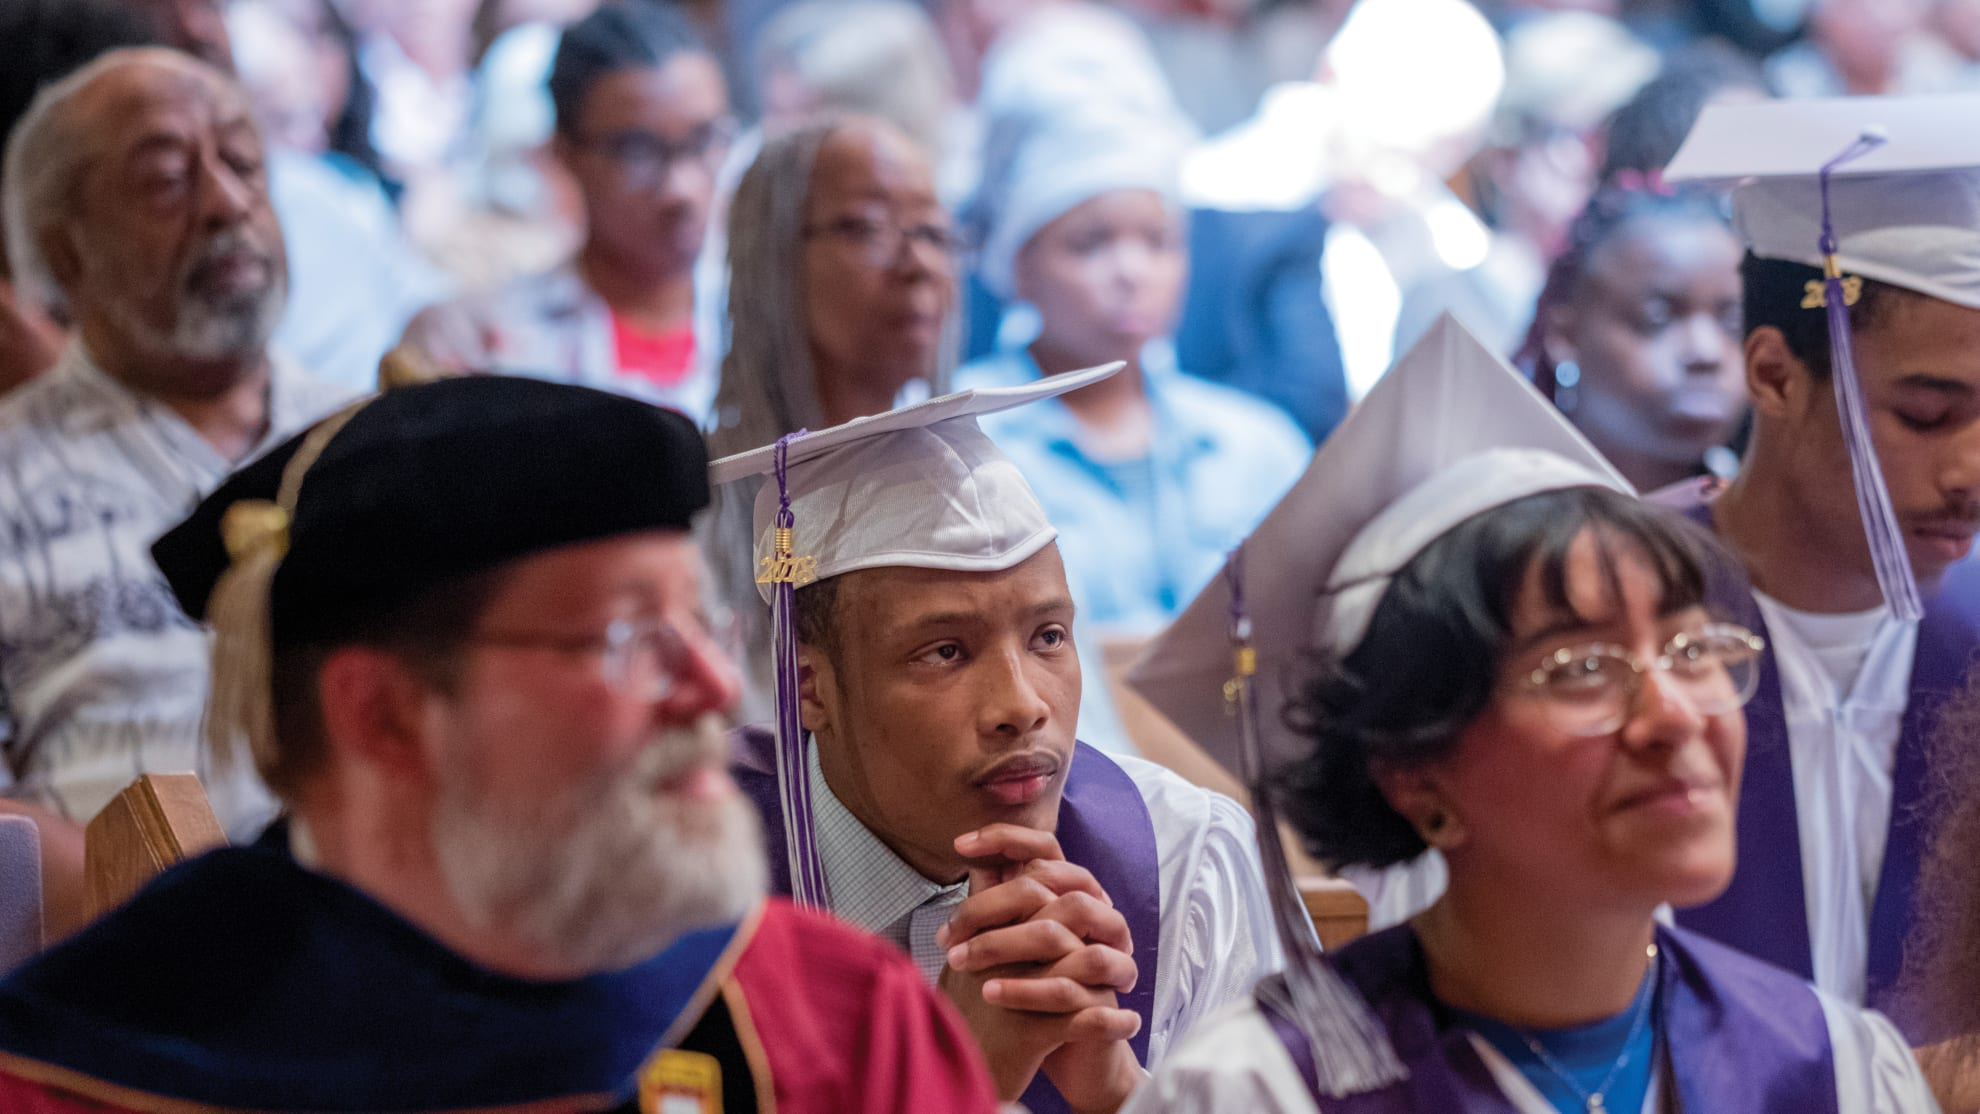 graduates and a professor listen to a speaker at a high school graduation